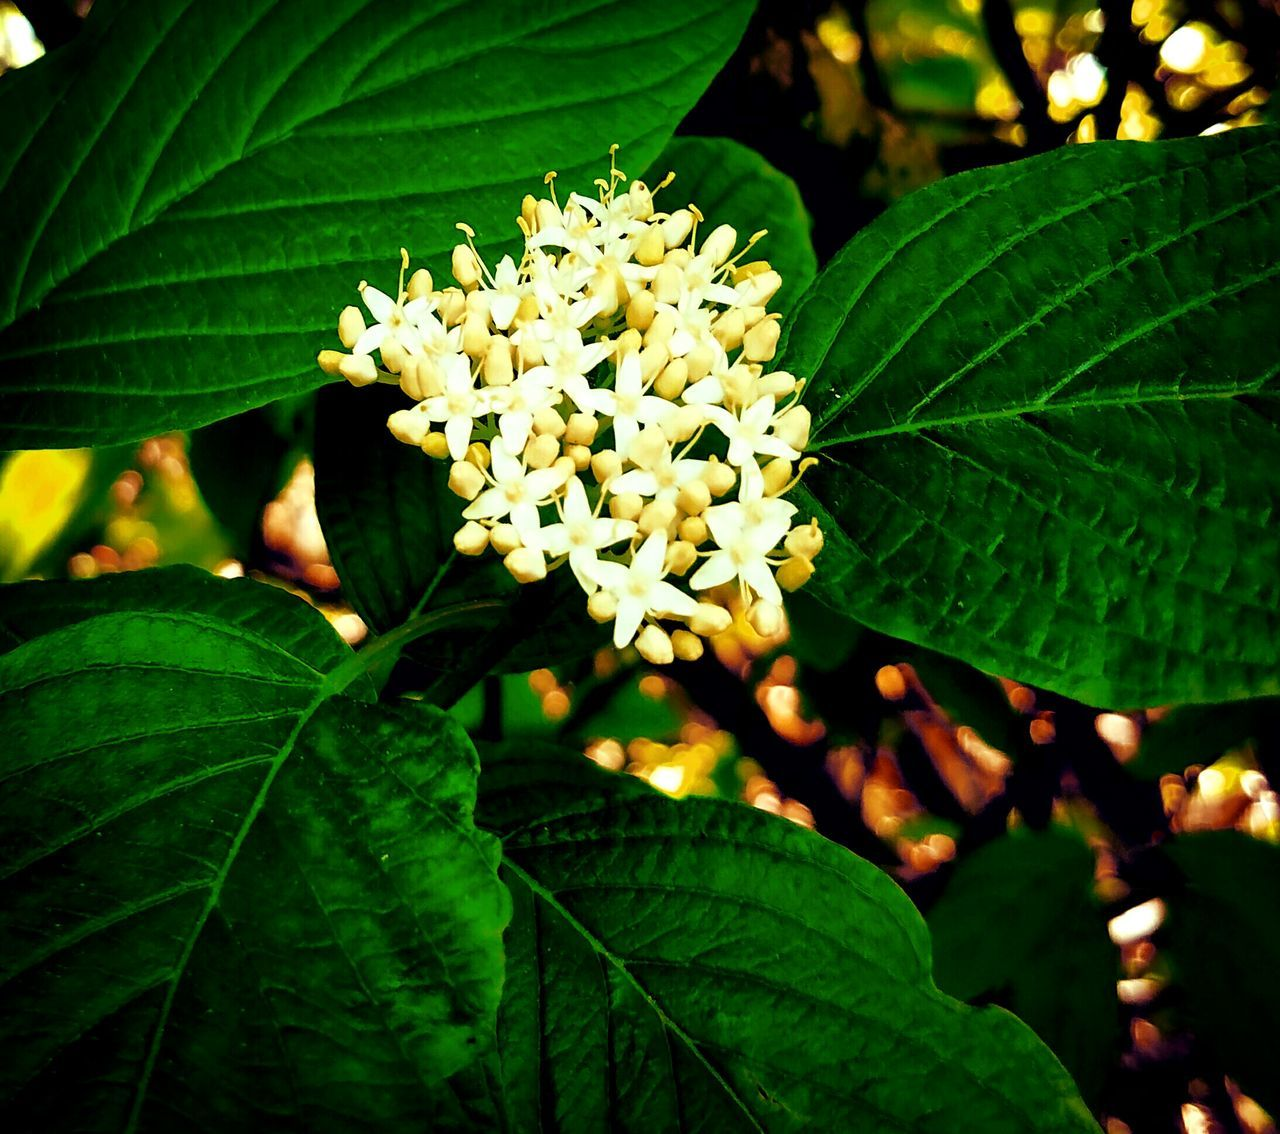 The Great Outdoors With Adobe Epic Shot Photography Eyeem_x_getty_collection Flowers, Nature And Beauty Eye For Photography Gettyimagesinstagramgrant Nature's Diversities Getty Image-collection Nature_collection Showcase May EyeEm Nature Lover Getty X EyeEm Images Northwestnature Gettyimagesgallery Spring 2016 EyeEmxGettyImages EyeEm Best Shots - Nature Getty & EyeEm Collection Gettyinstagramgrant Gettyimages Getty+EyeEm Collection Getty X EyeEm Wild & Pure Flower Photography EyeEm Best Shots